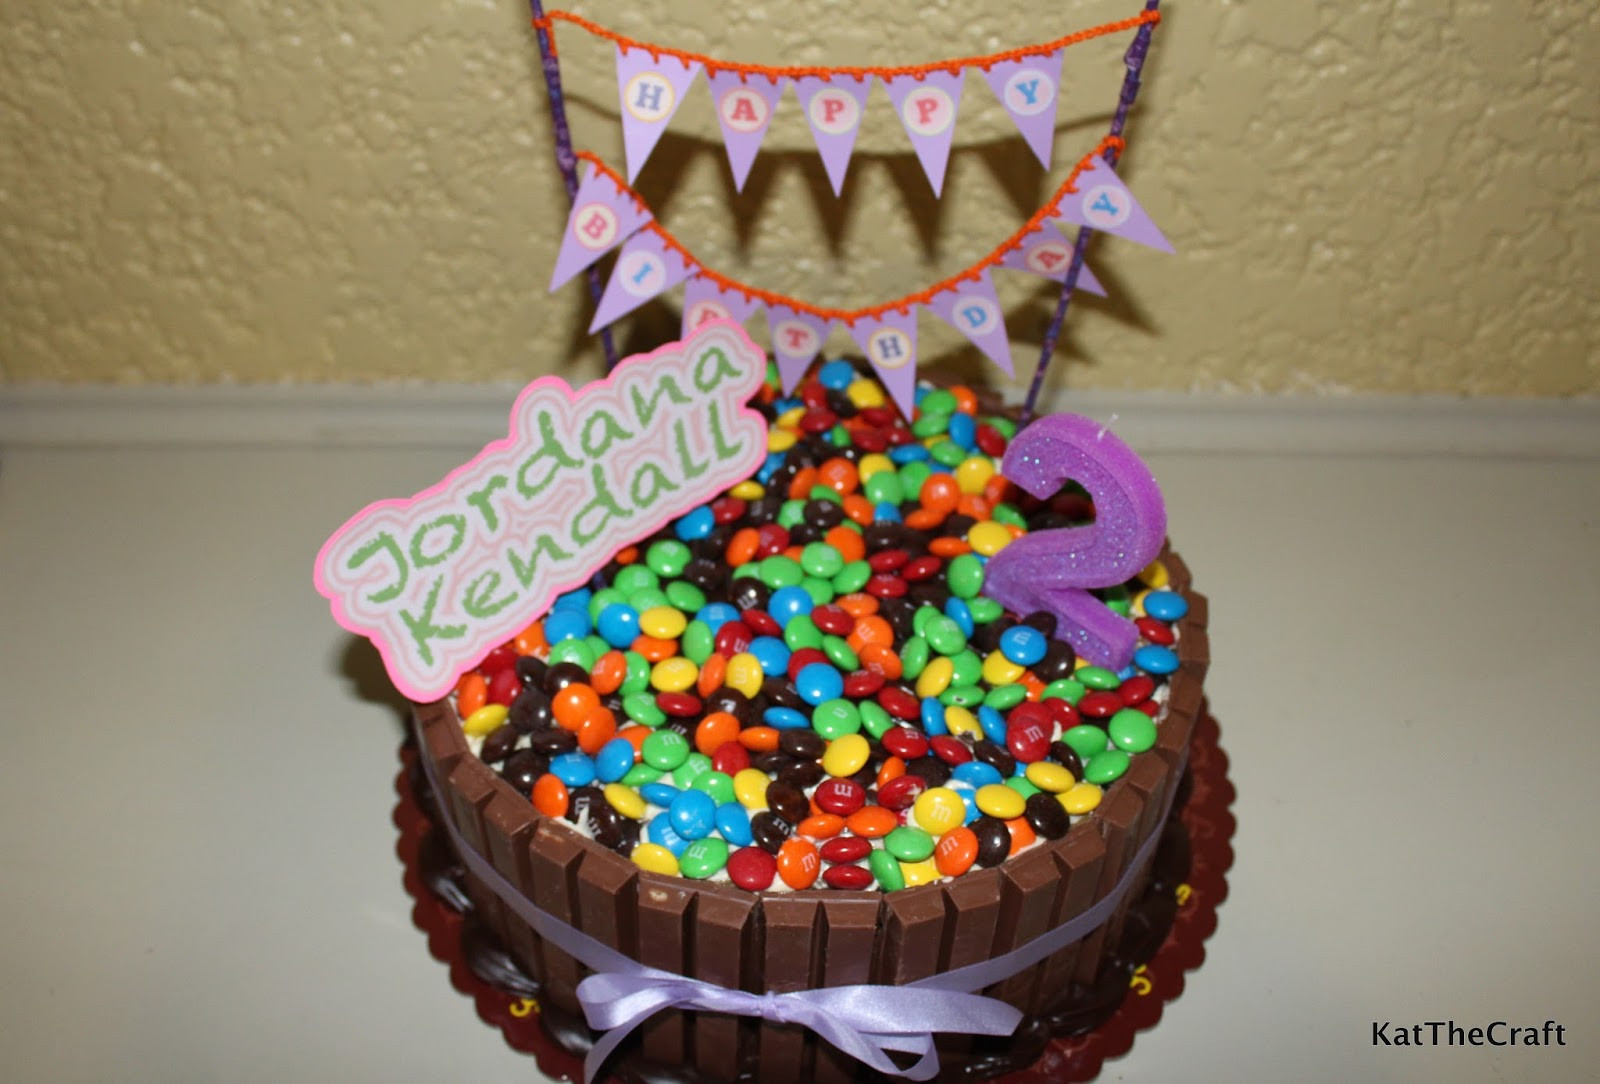 Best ideas about DIY Birthday Cakes . Save or Pin So Many Things to Do So Little Time DIY Birthday Cake Now.